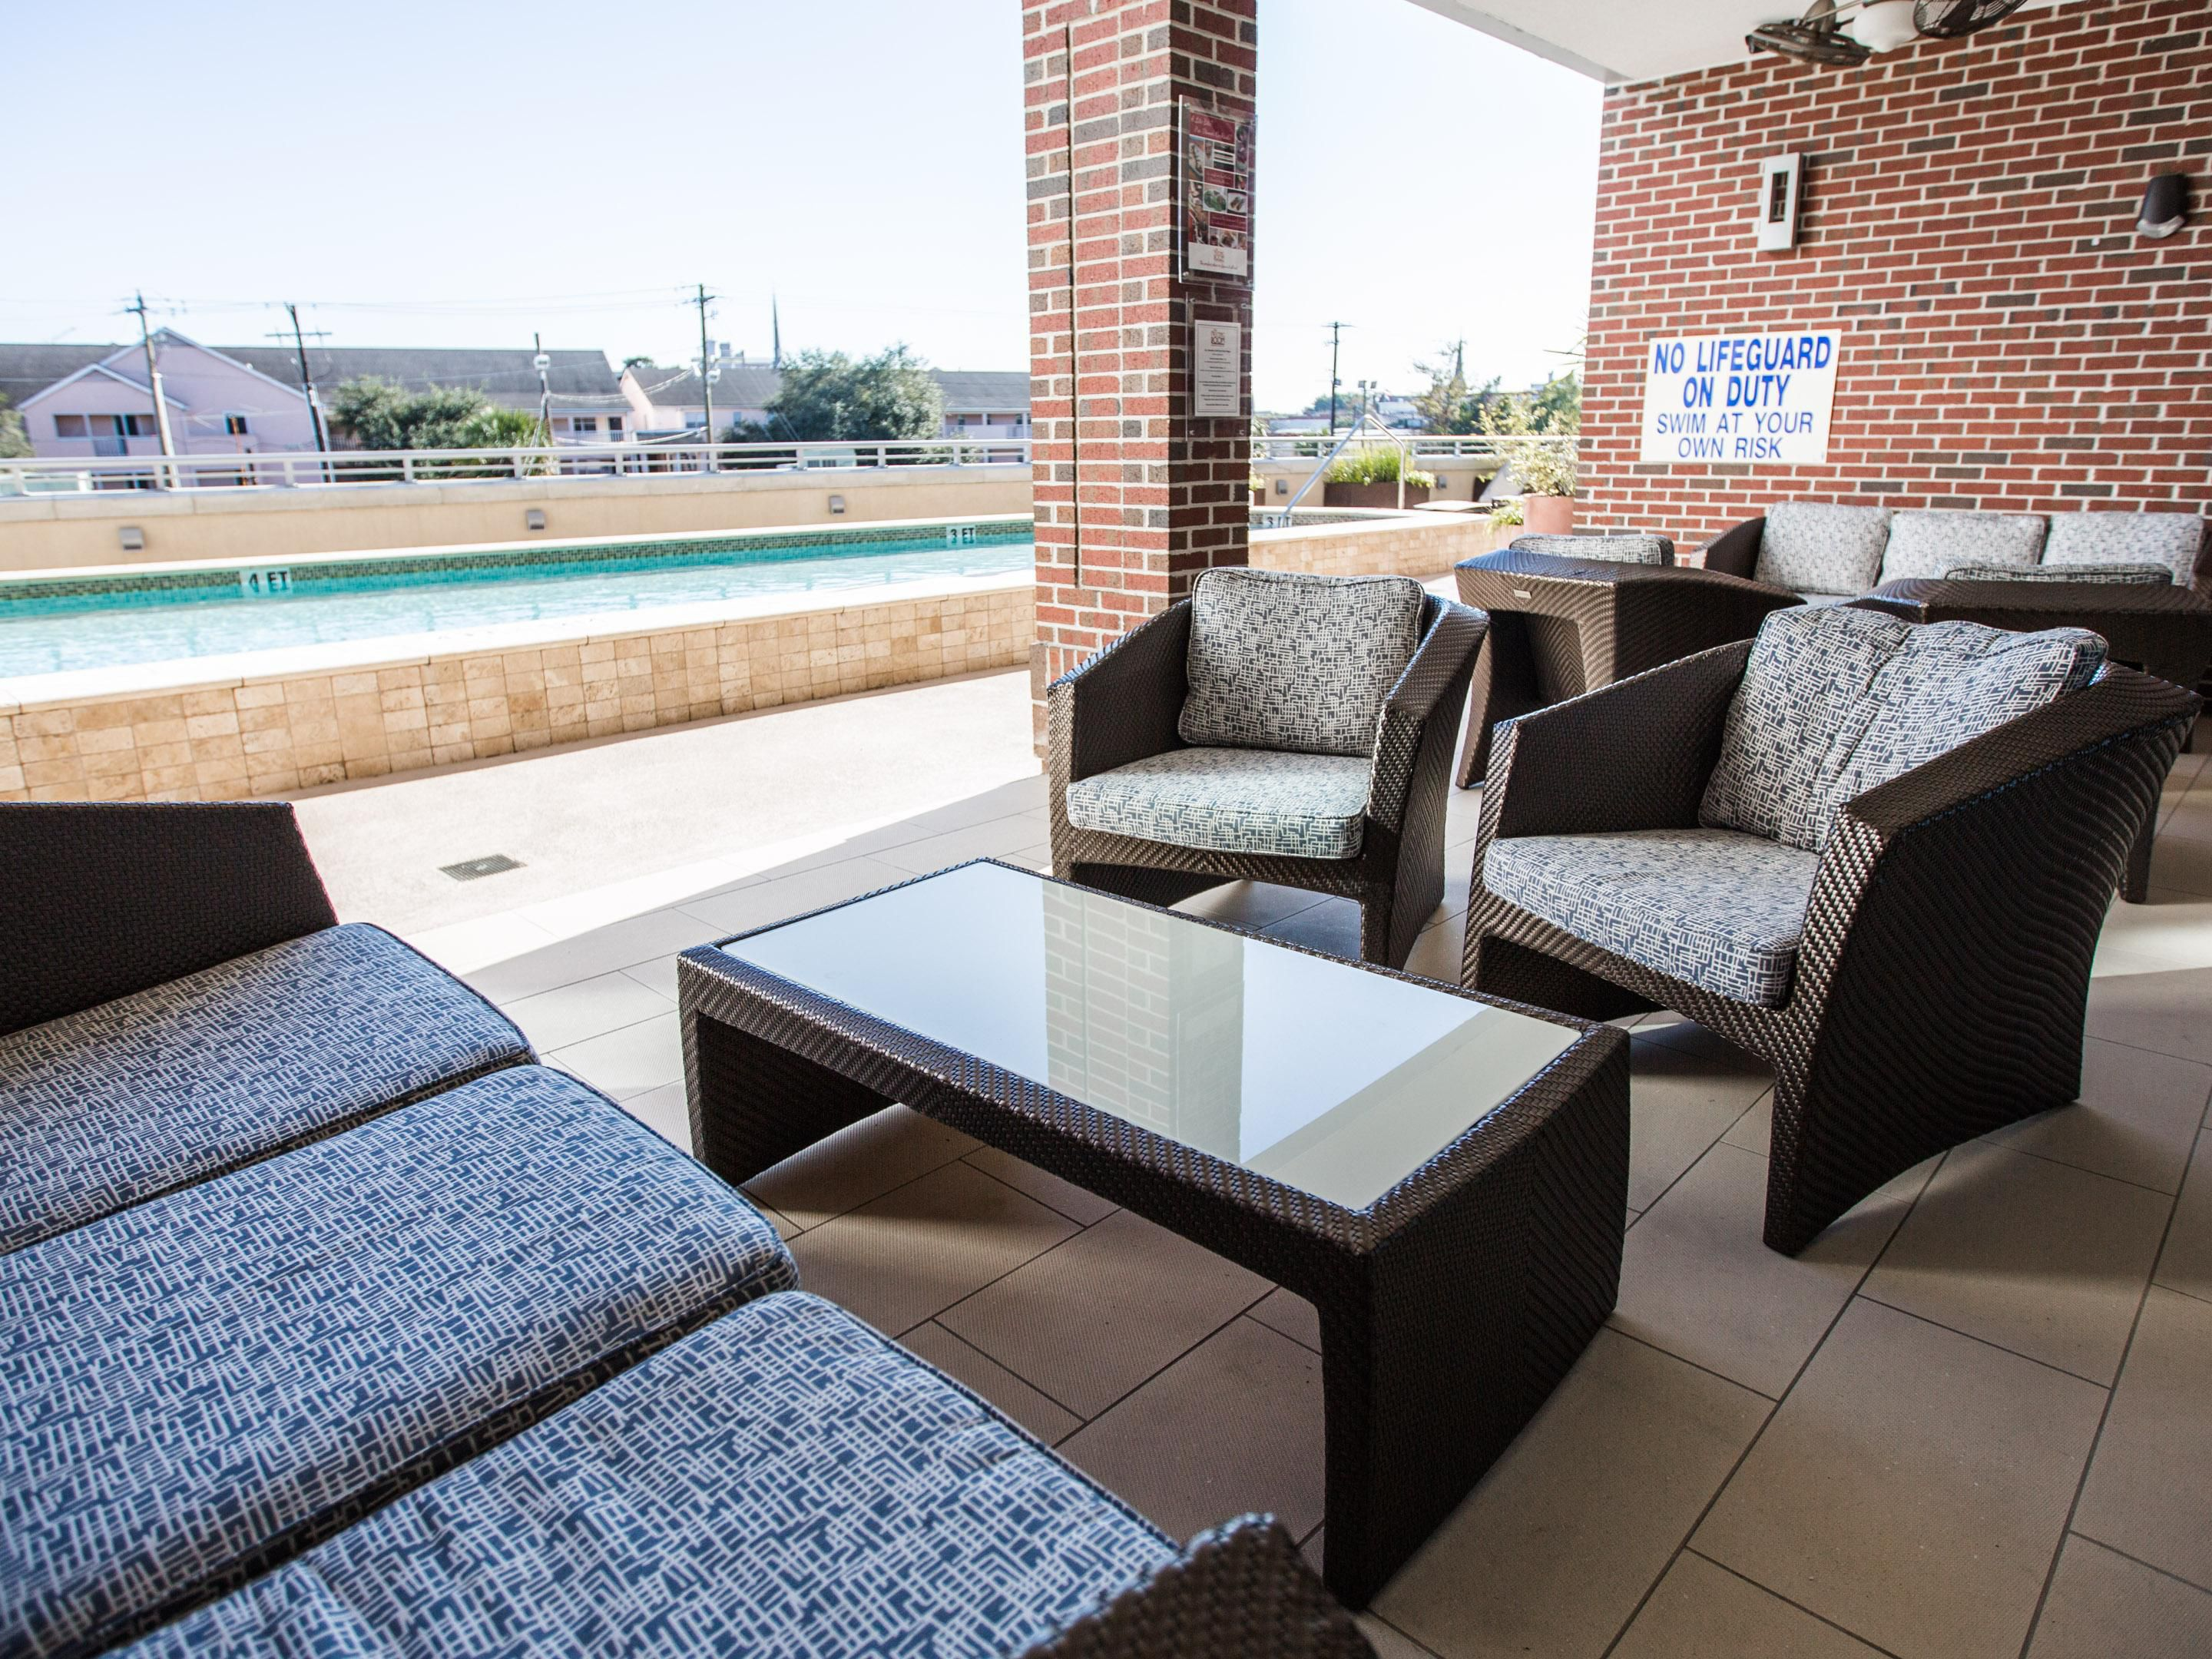 Plenty of Outdoor Seating by our Outdoor Heated Pool